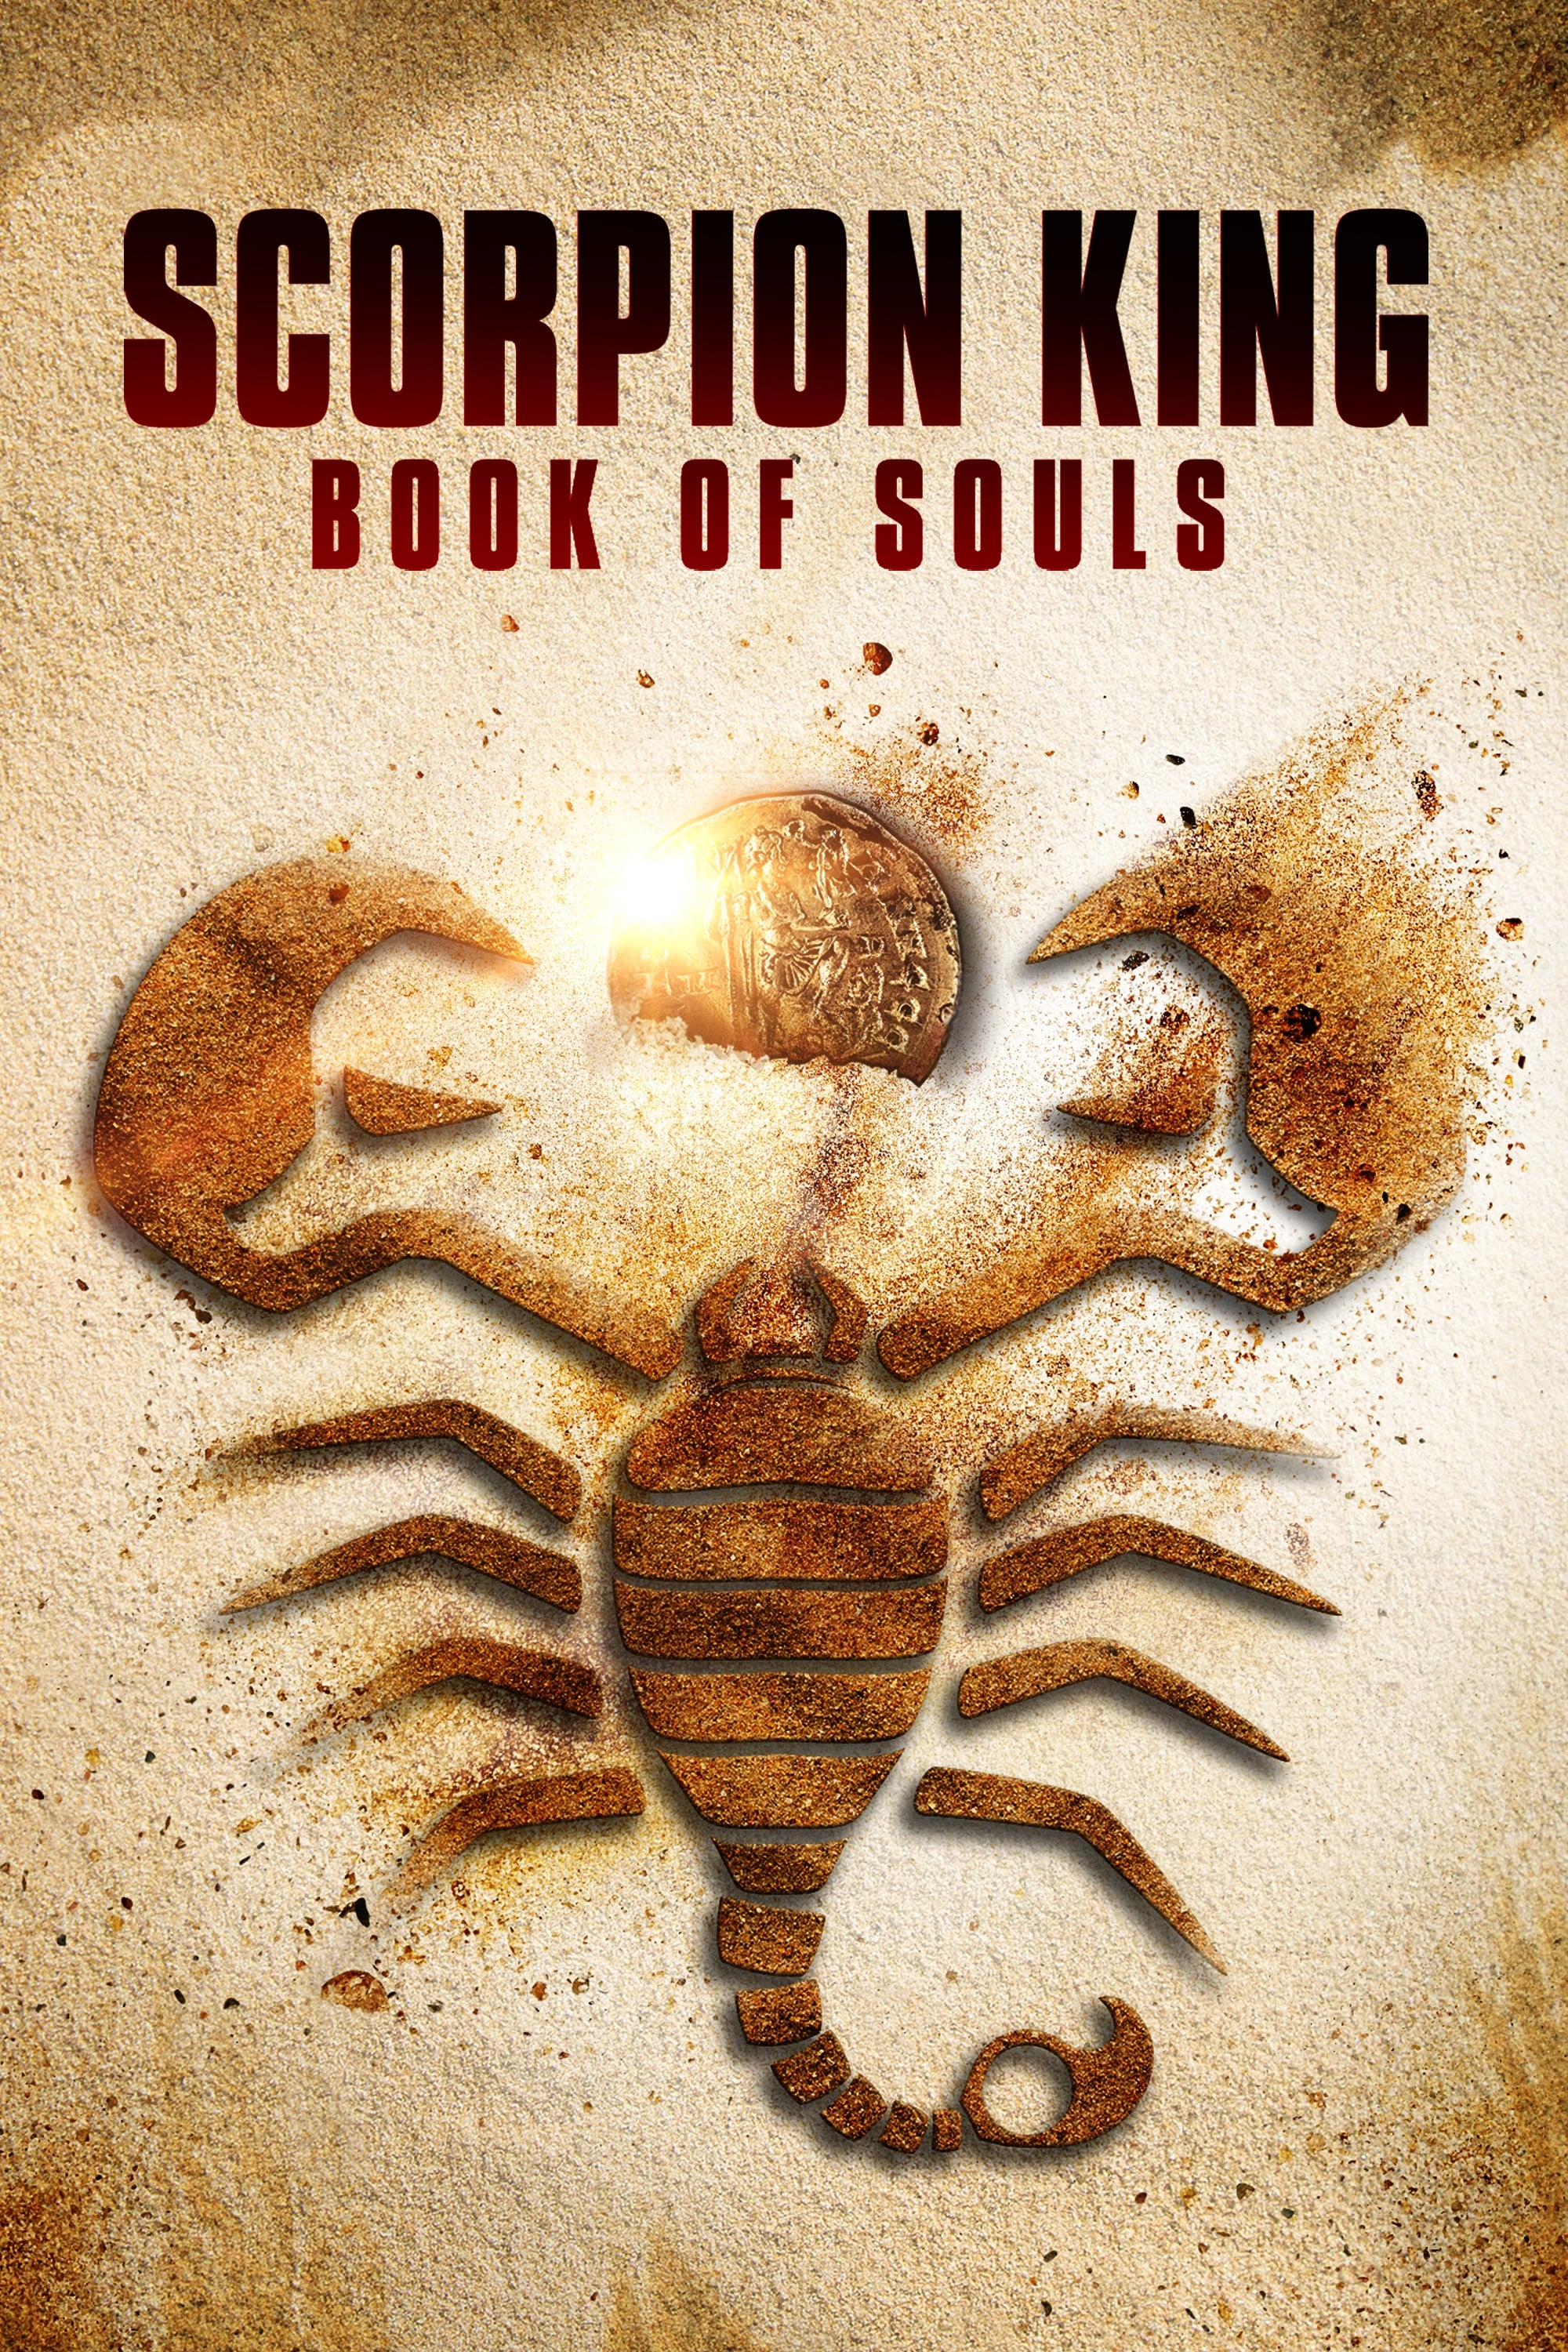 watch Scorpion King: Book of Souls 2018 online free